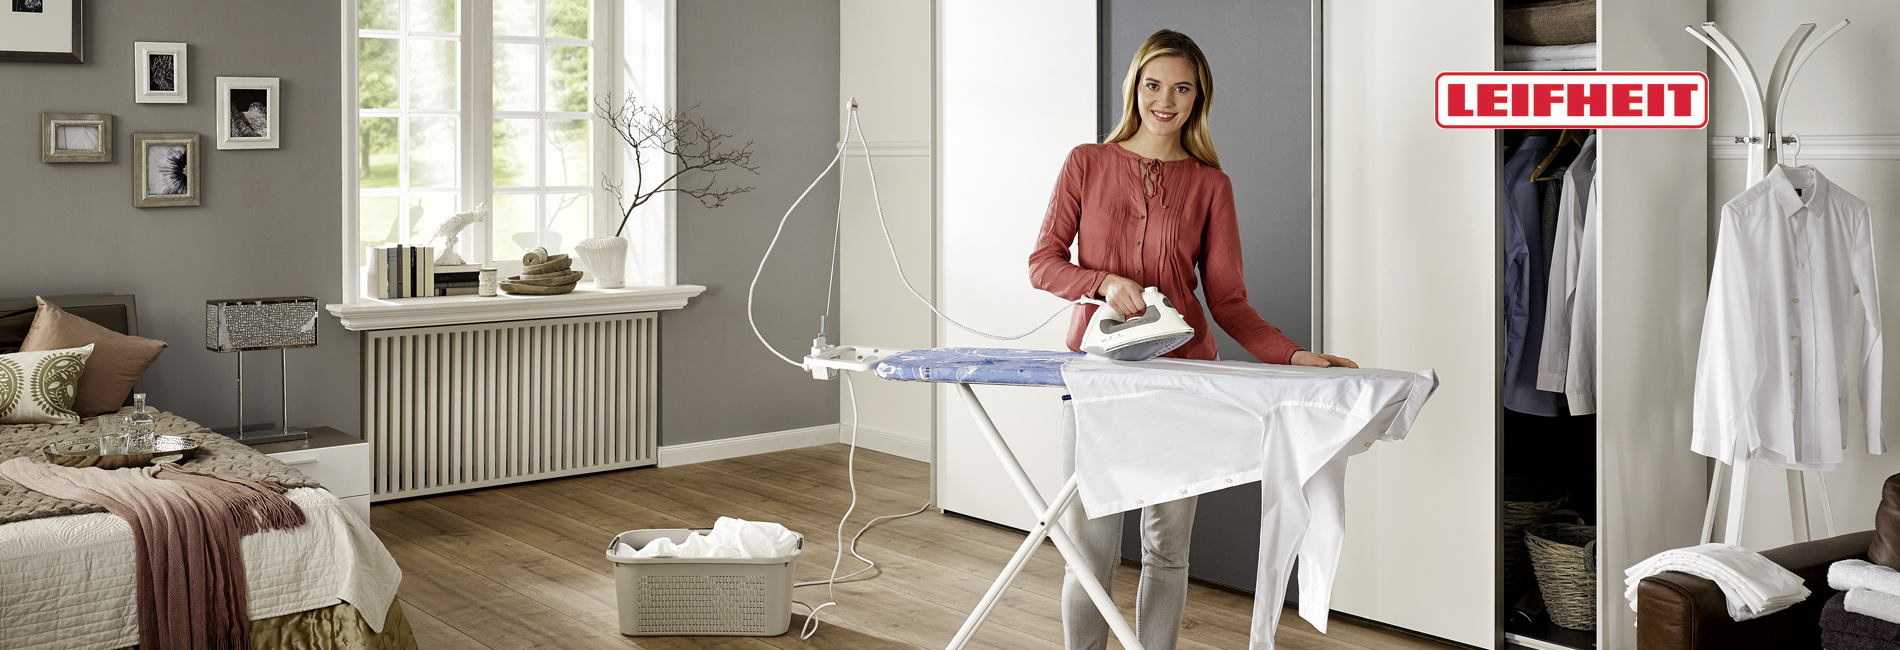 Leifheit Ironing Boards : Maximum ironing comfort for perfect laundry Ironing Tables ,  Ironing board covers, Laundry Organisers